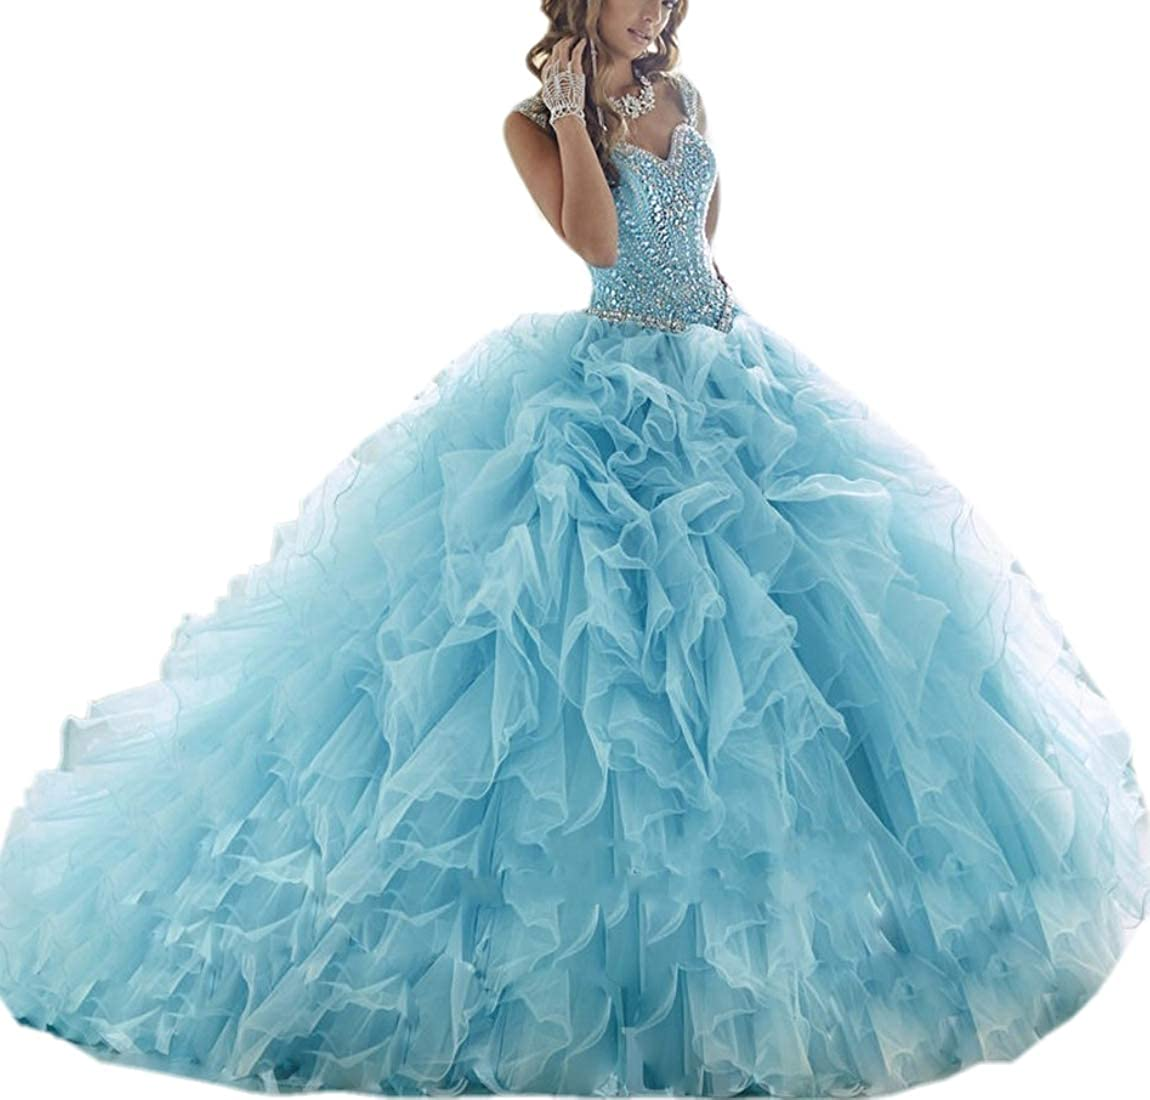 bluee APXPF Women's Crystals Beaded Organza Ruffle Quinceanera Dress Sweet 16 Ball Gown Prom Dress